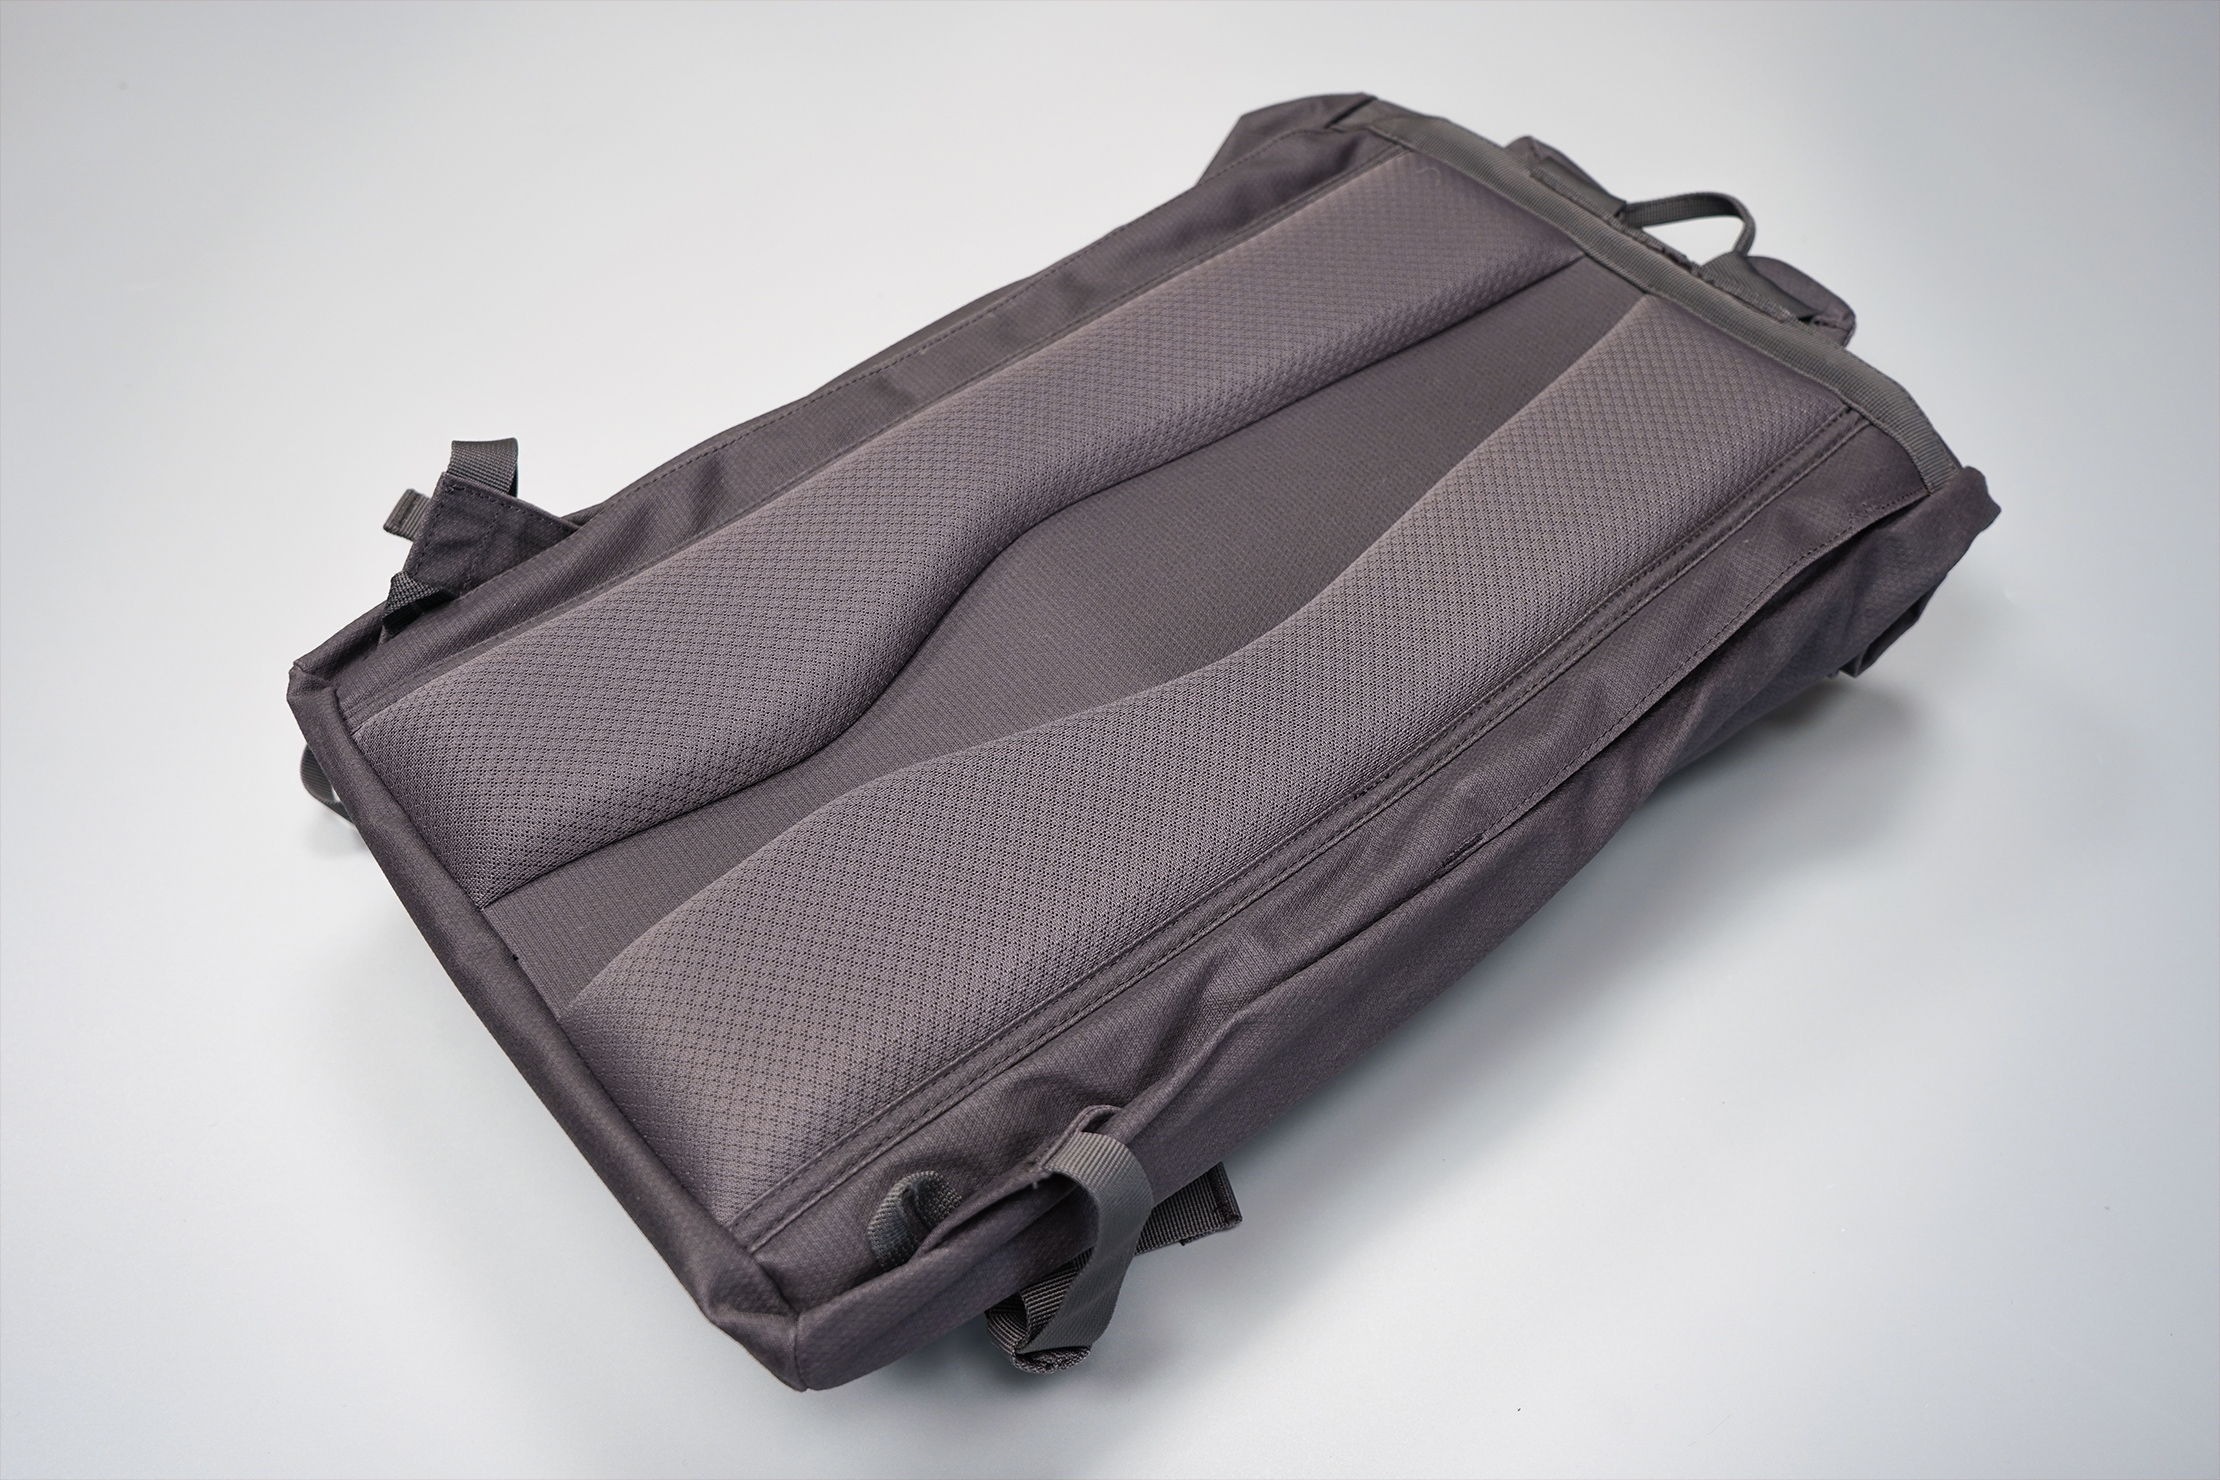 Millican Smith Roll Pack 18L   Foam-padded back panel with an air channel